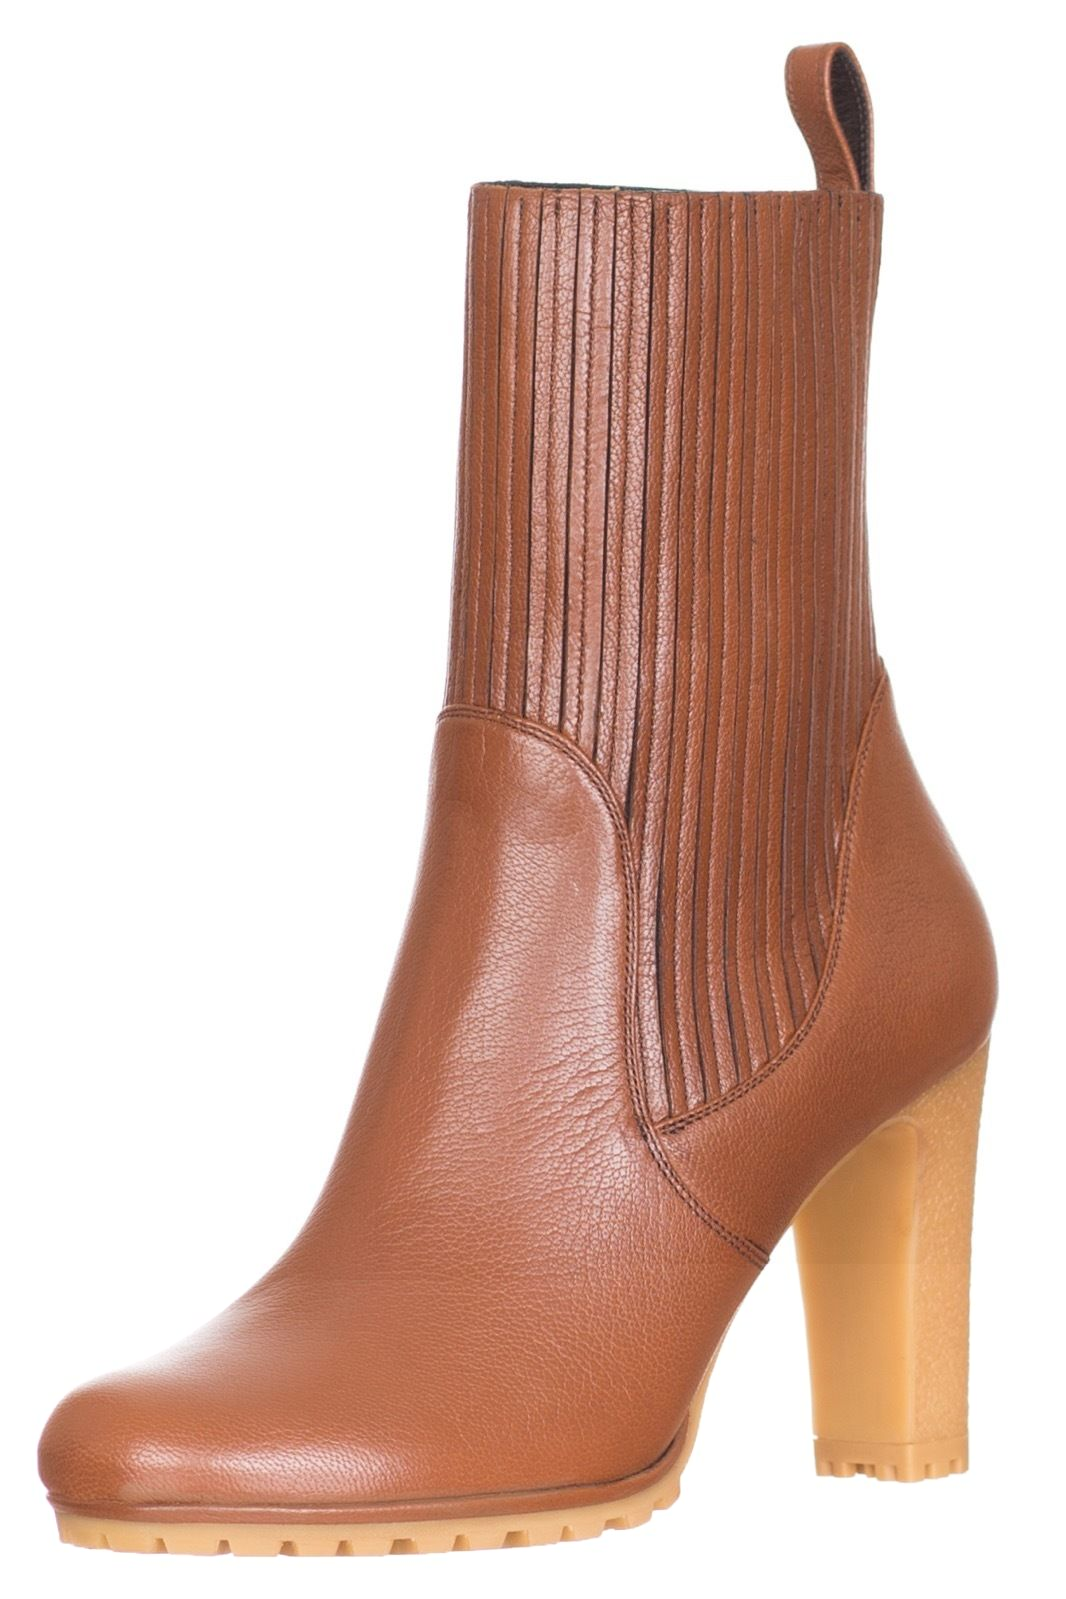 c473f45f5c2c57 Gucci Edith Cuir Brown Leather Mid-Heel Bootie Boots Shoes US 8 ...